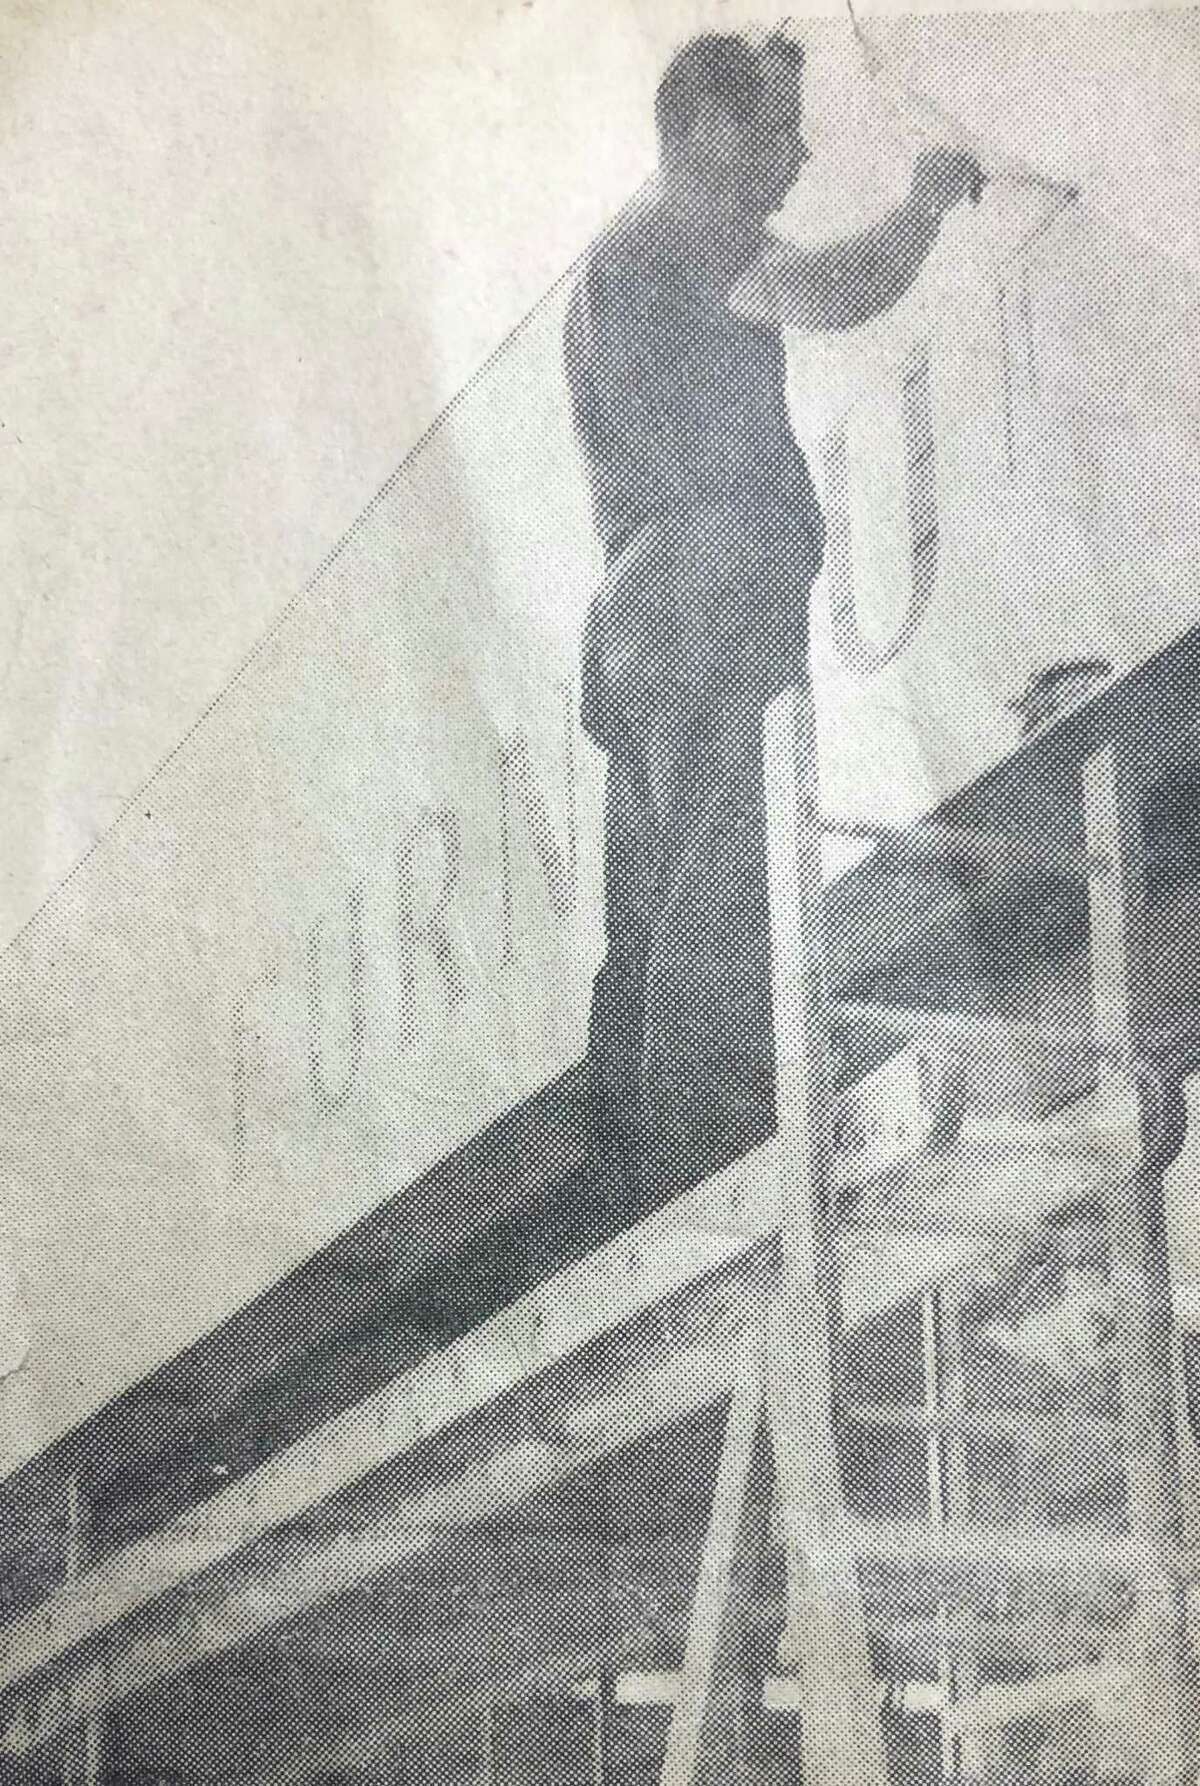 """Signs today aren't made as they were in the past. Years ago, signs and billboards were hand-painted, as shown in this circa 1970s photo printed in The New Milford Times. The photo is of George Pineman, longtime owner of Pineman Sign Co. on East Street in New Milford, adding the final touches to the sign above Family Furniture Company, housed in the former W.T. Grant Co. store on Main Street, which was the anchor store of the building that now houses Domino's in town. The proprietor of the local business was O.W. Murphy, known commonly in the area as """"Big Murf."""" Pineman opened the residential and commercial sign company in 1962 and operated it until his death in 2012. If you have a """"Way Back When"""" photograph you'd like to share, contact Deborah Rose at drose@newstimes.com or 860-355-7324."""